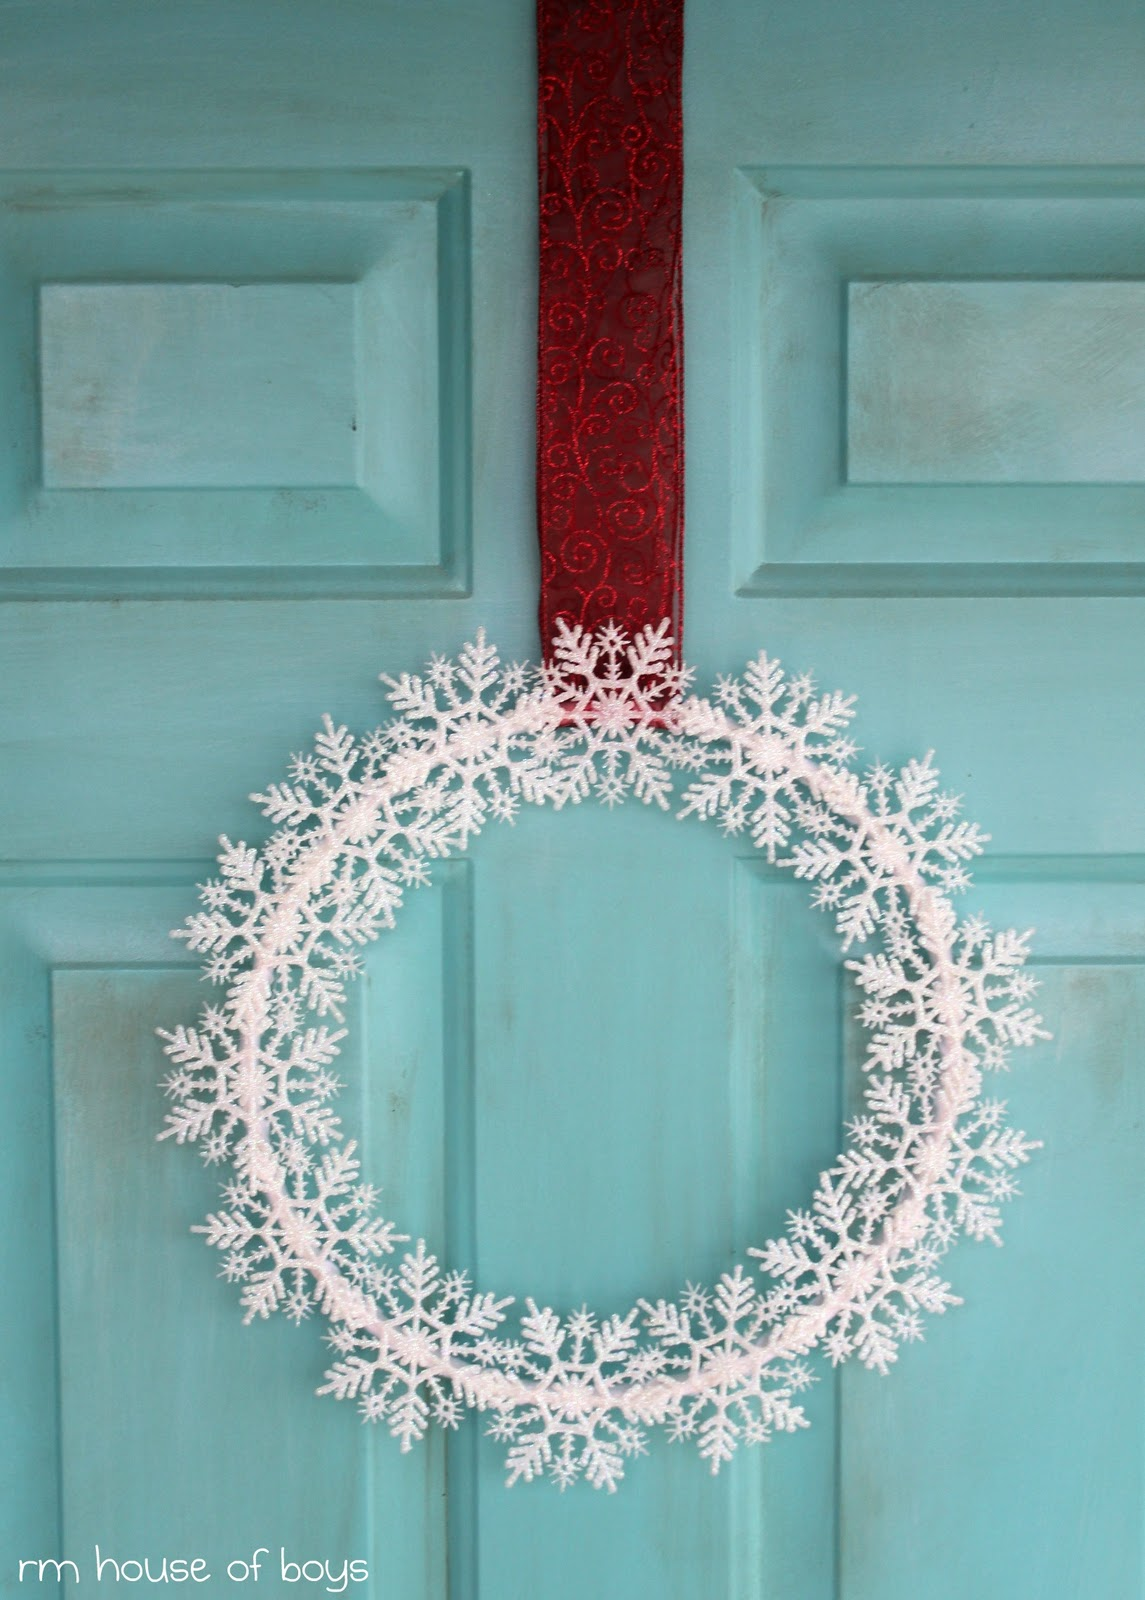 30 christmas door decorating ideas best decorations for your 30 christmas door decorating ideas best decorations for your front door